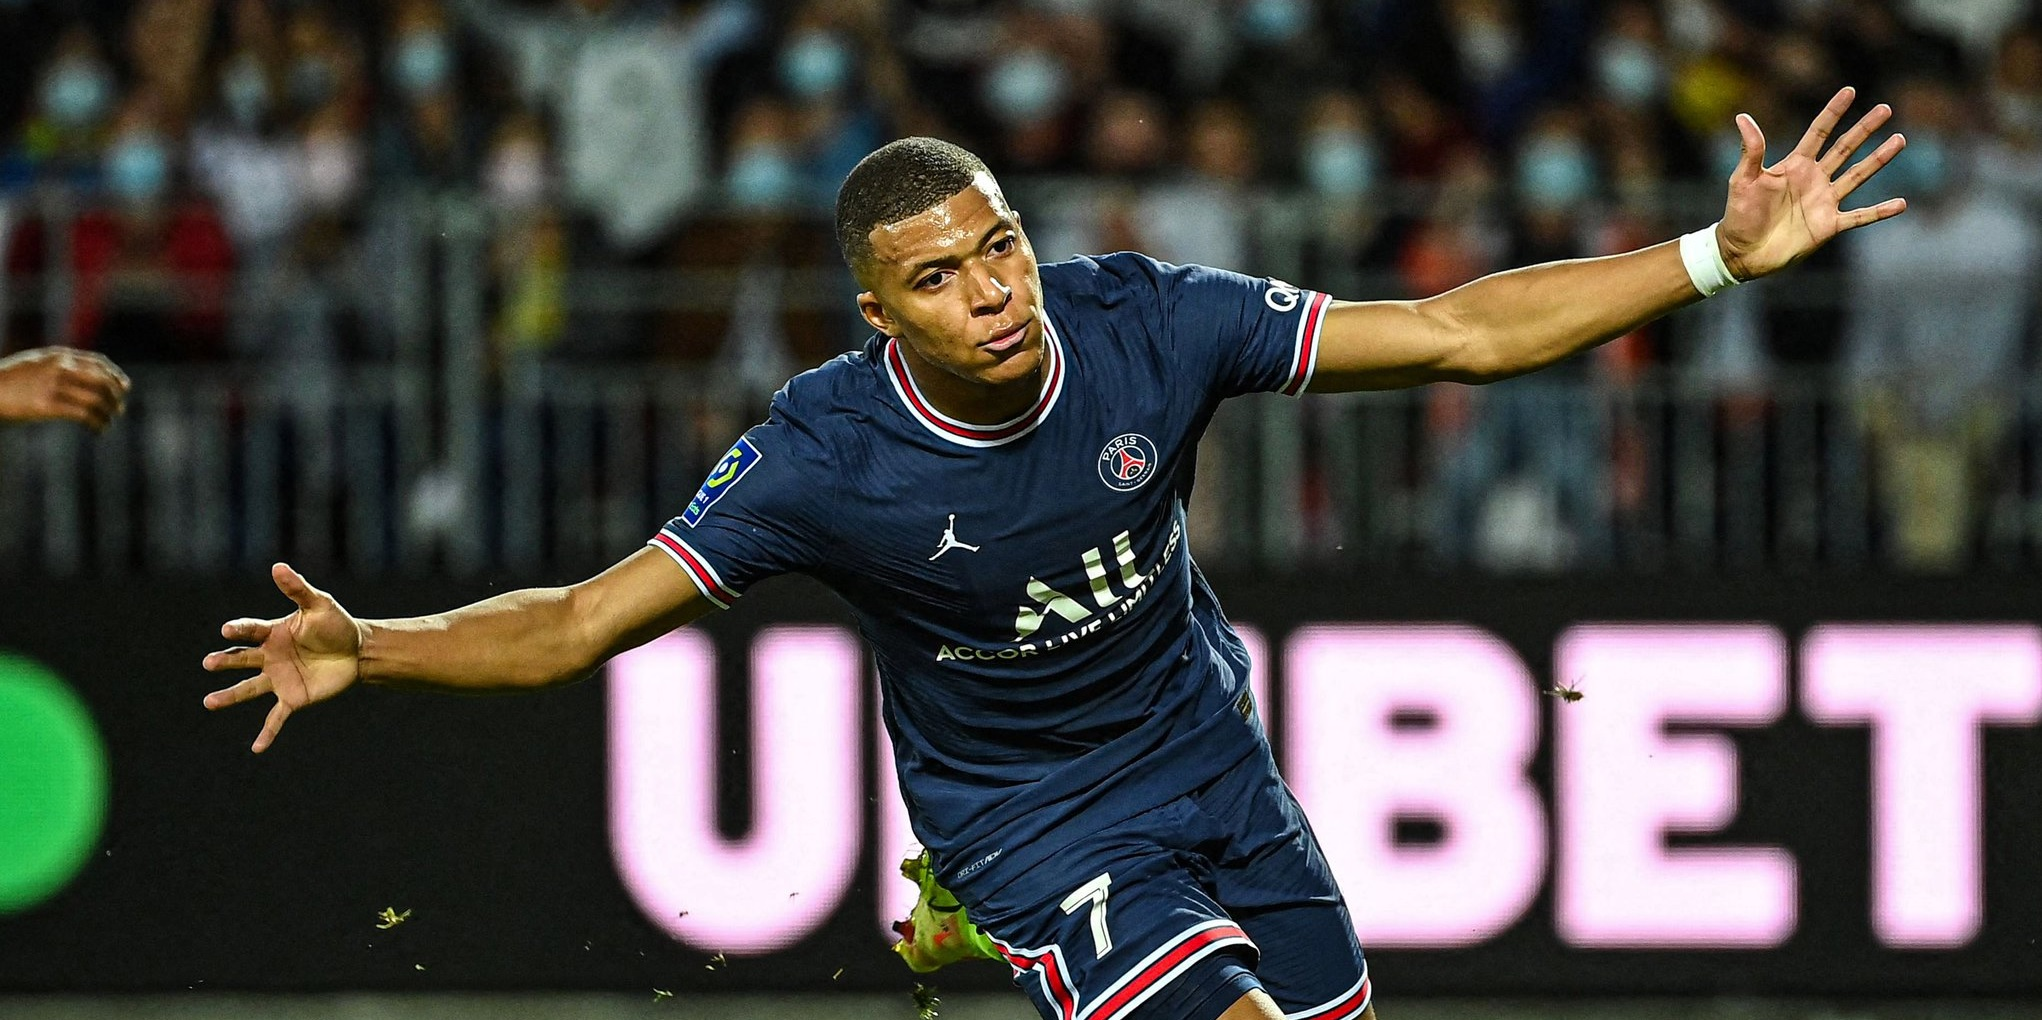 Romano issues update on Mbappe future after reports suggest Liverpool made bid for PSG star